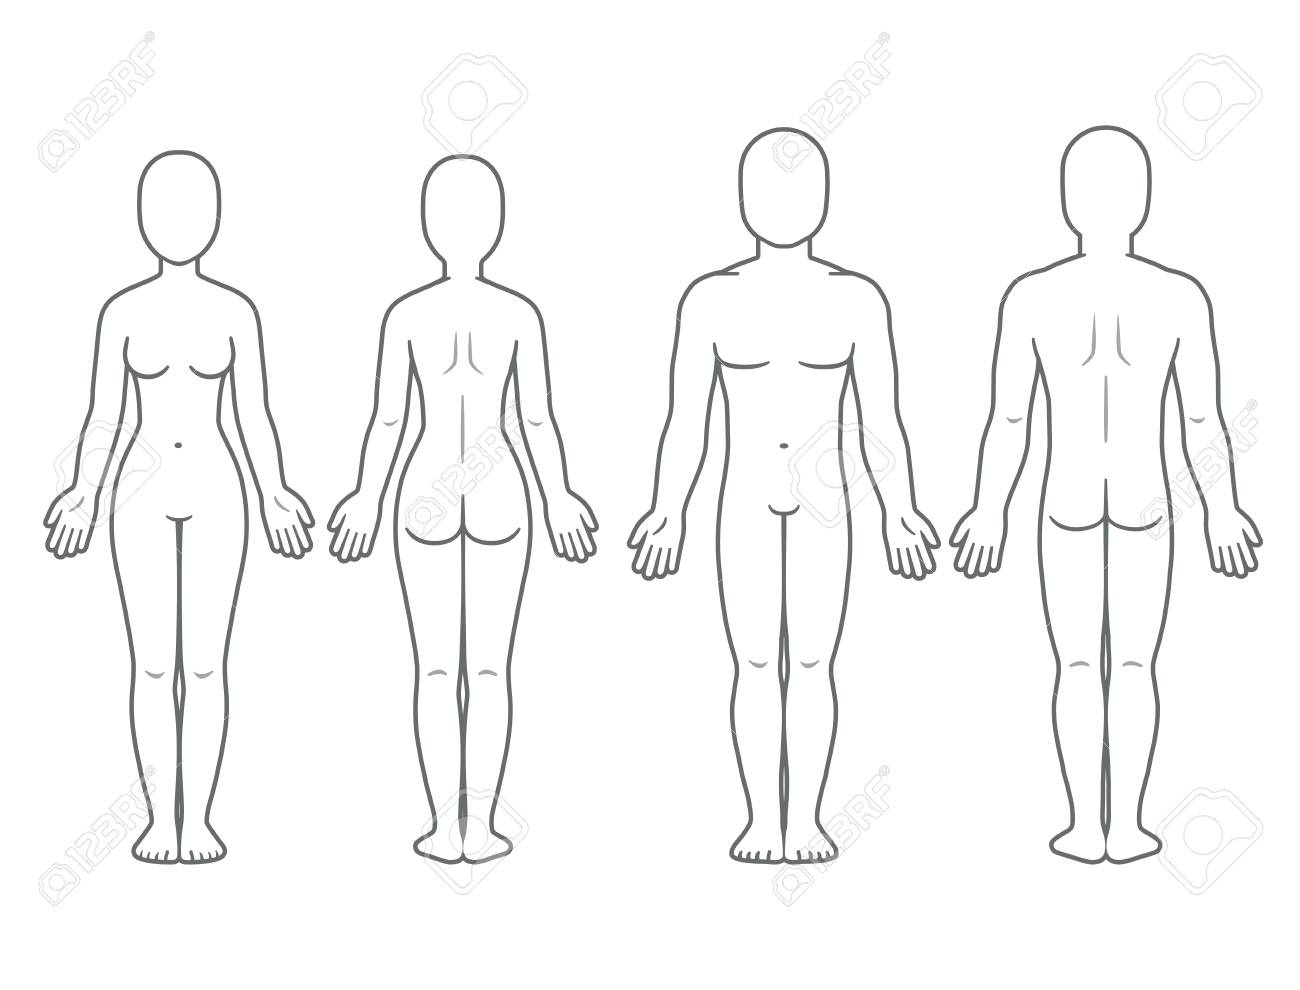 Male And Female Body Front And Back View. Blank Human Body Template - Free Printable Human Body Template